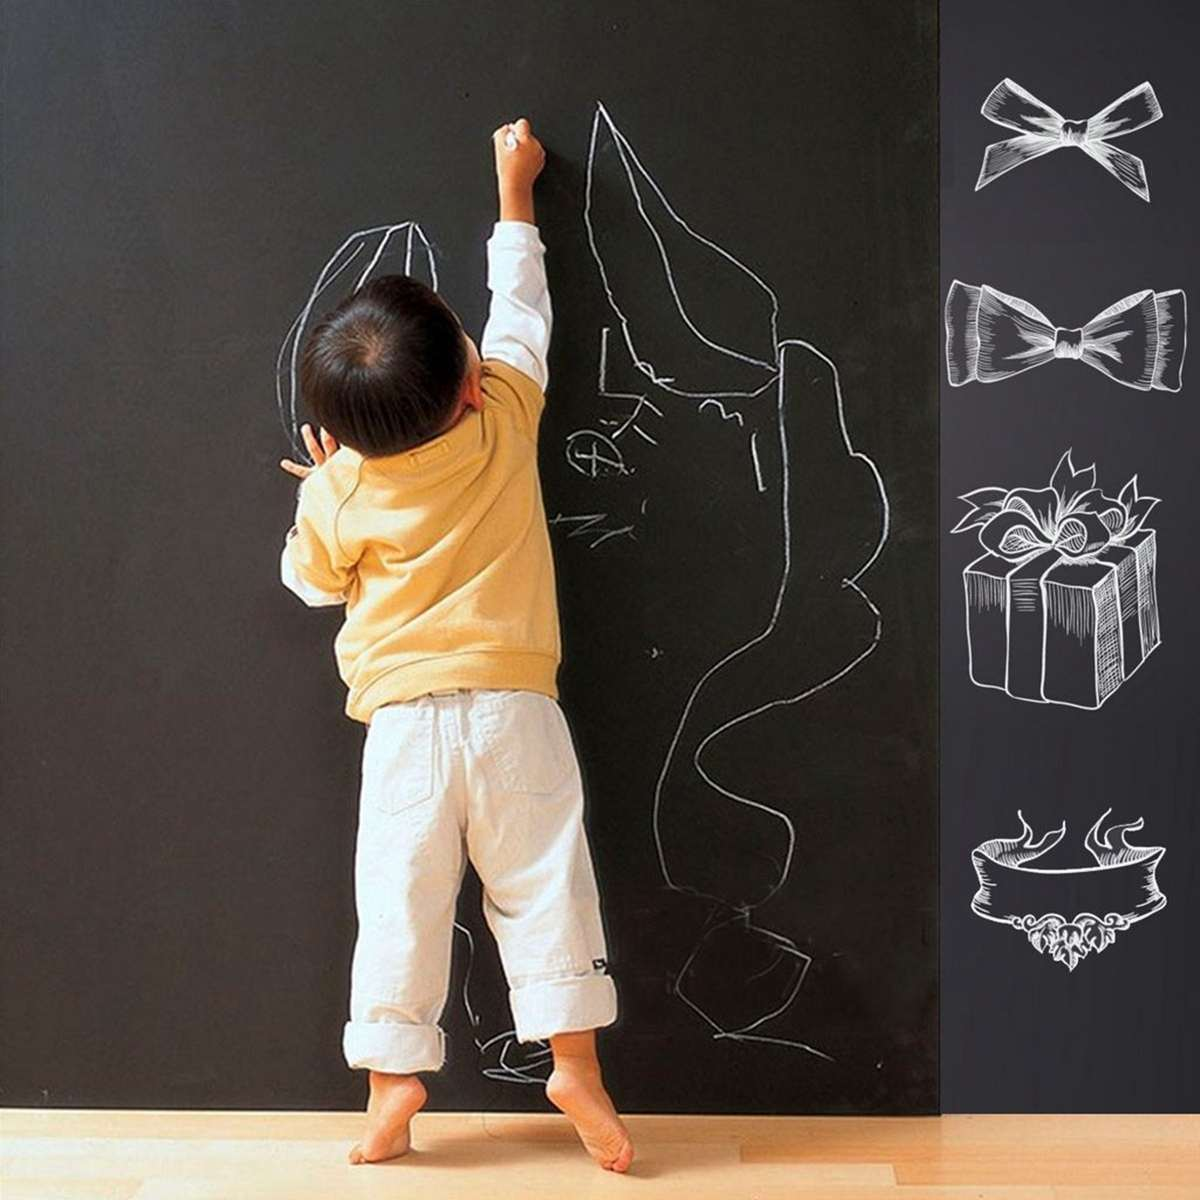 60x200cm Kids Blackboard Removable Wall Sticker Chalkboard Decal Children Blackboard Chalkboard Sticker Label For Boy Girls